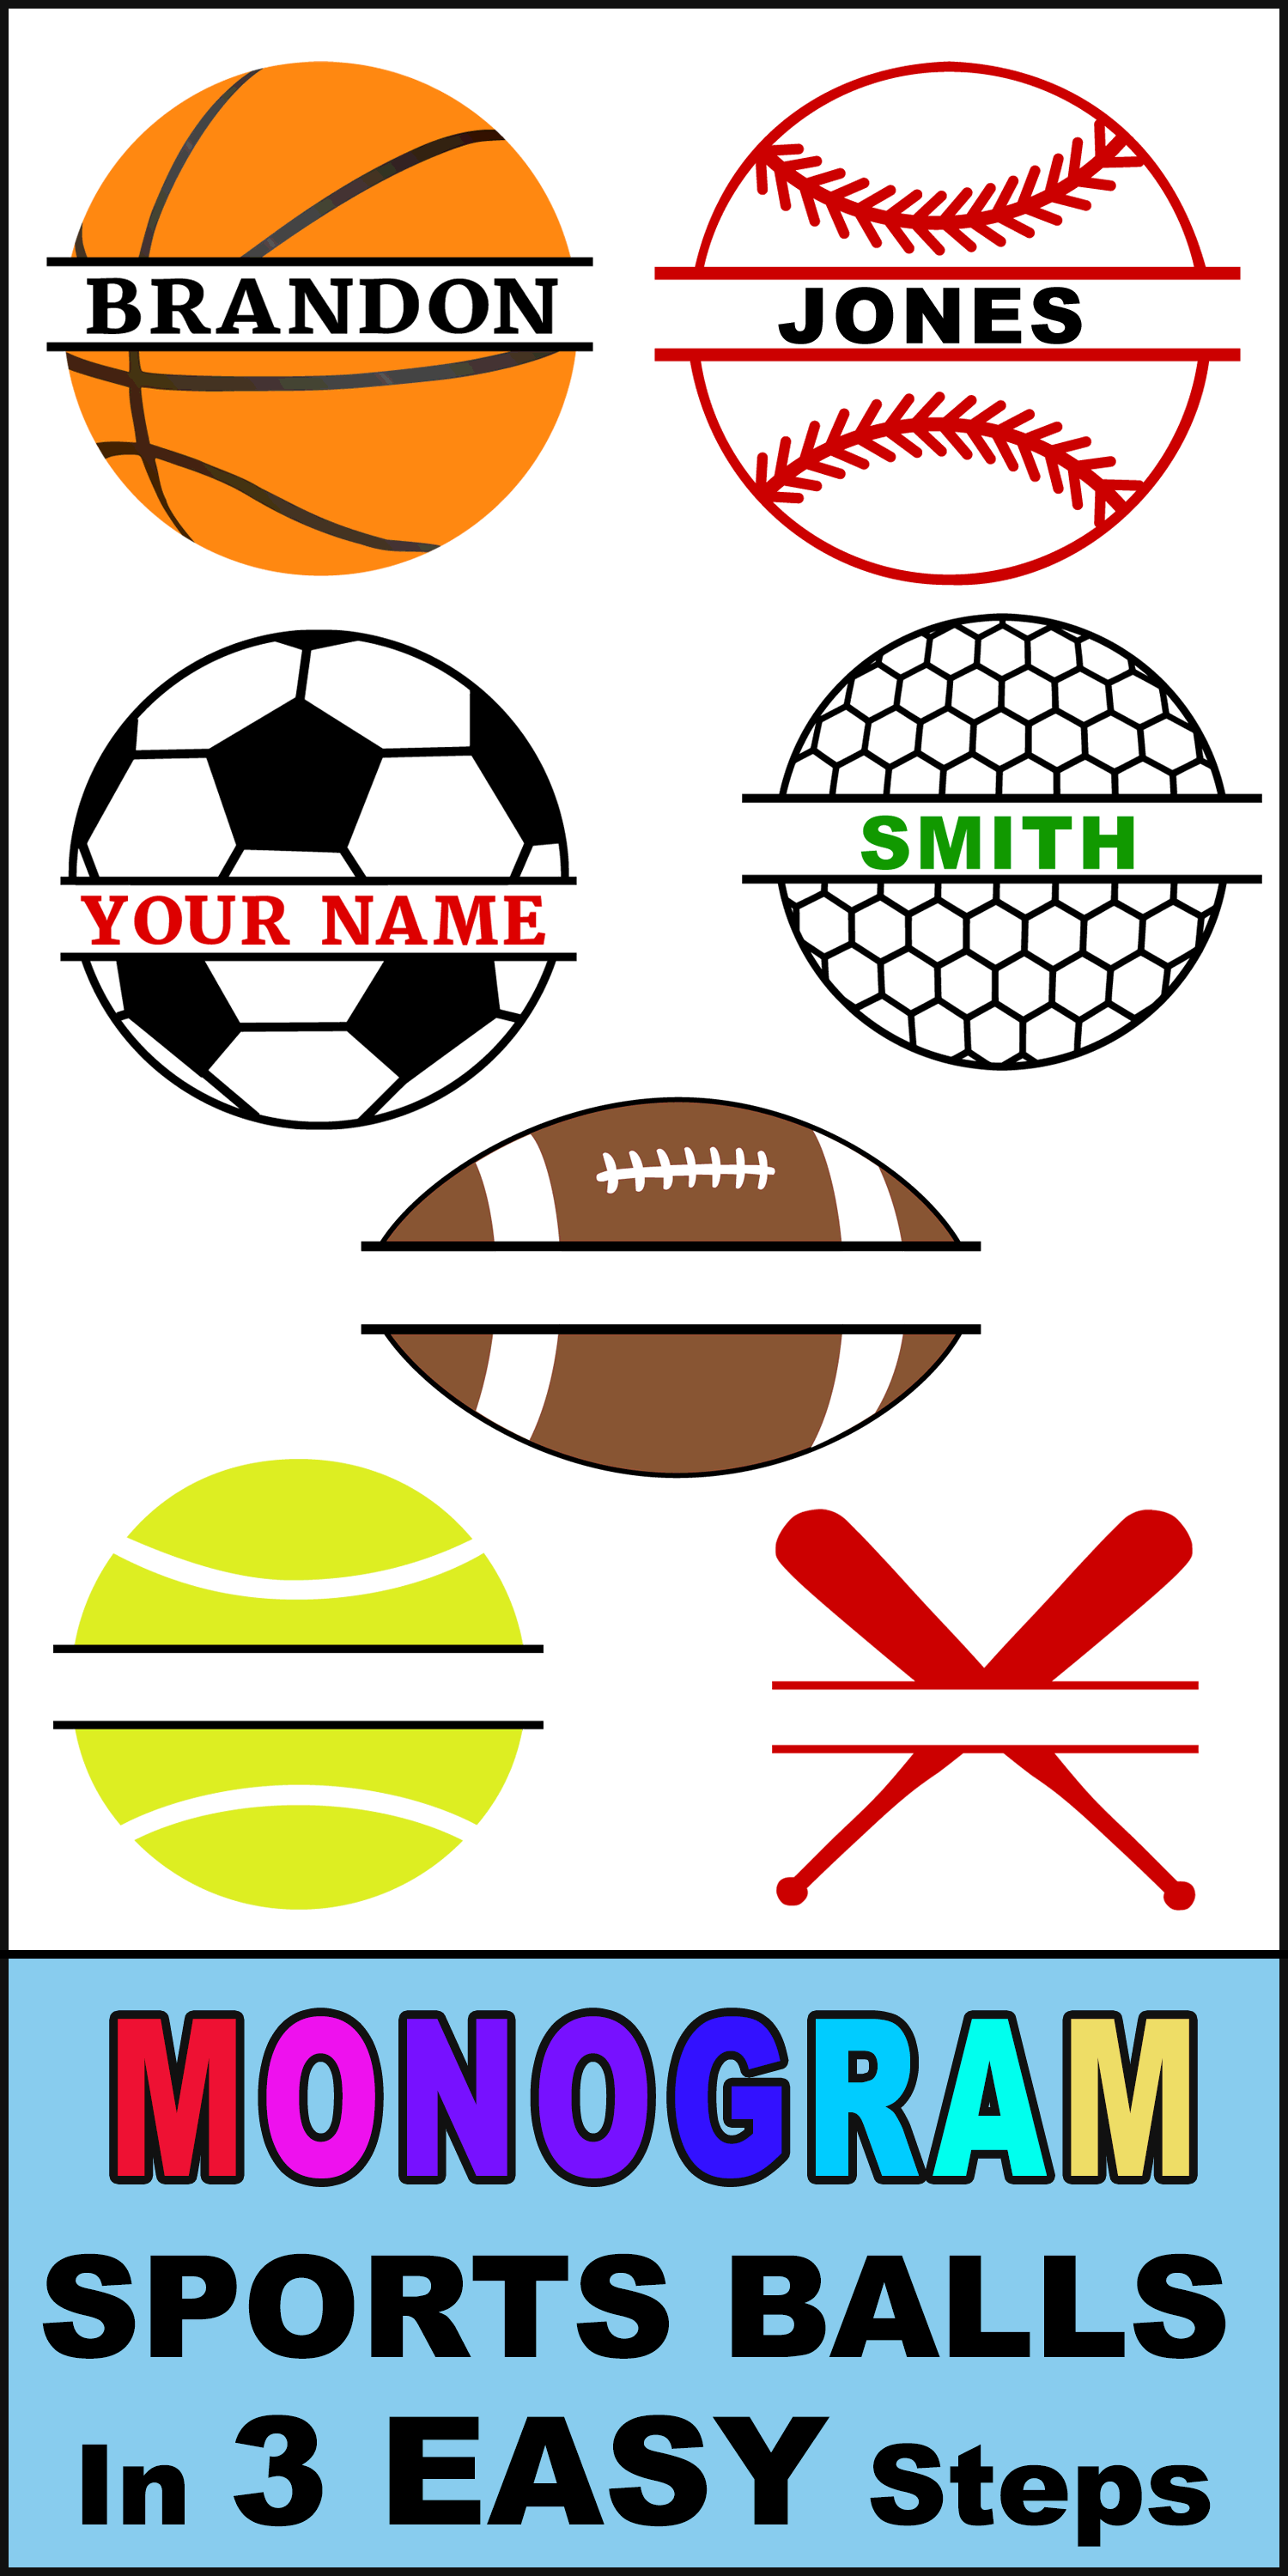 Free online monogram sports balls.  Create DIY customized graphics, images, designs, and clip art with your name or initials using our online generator. Cutting machines (Cricut and Silhouette), DIY arts and crafts.